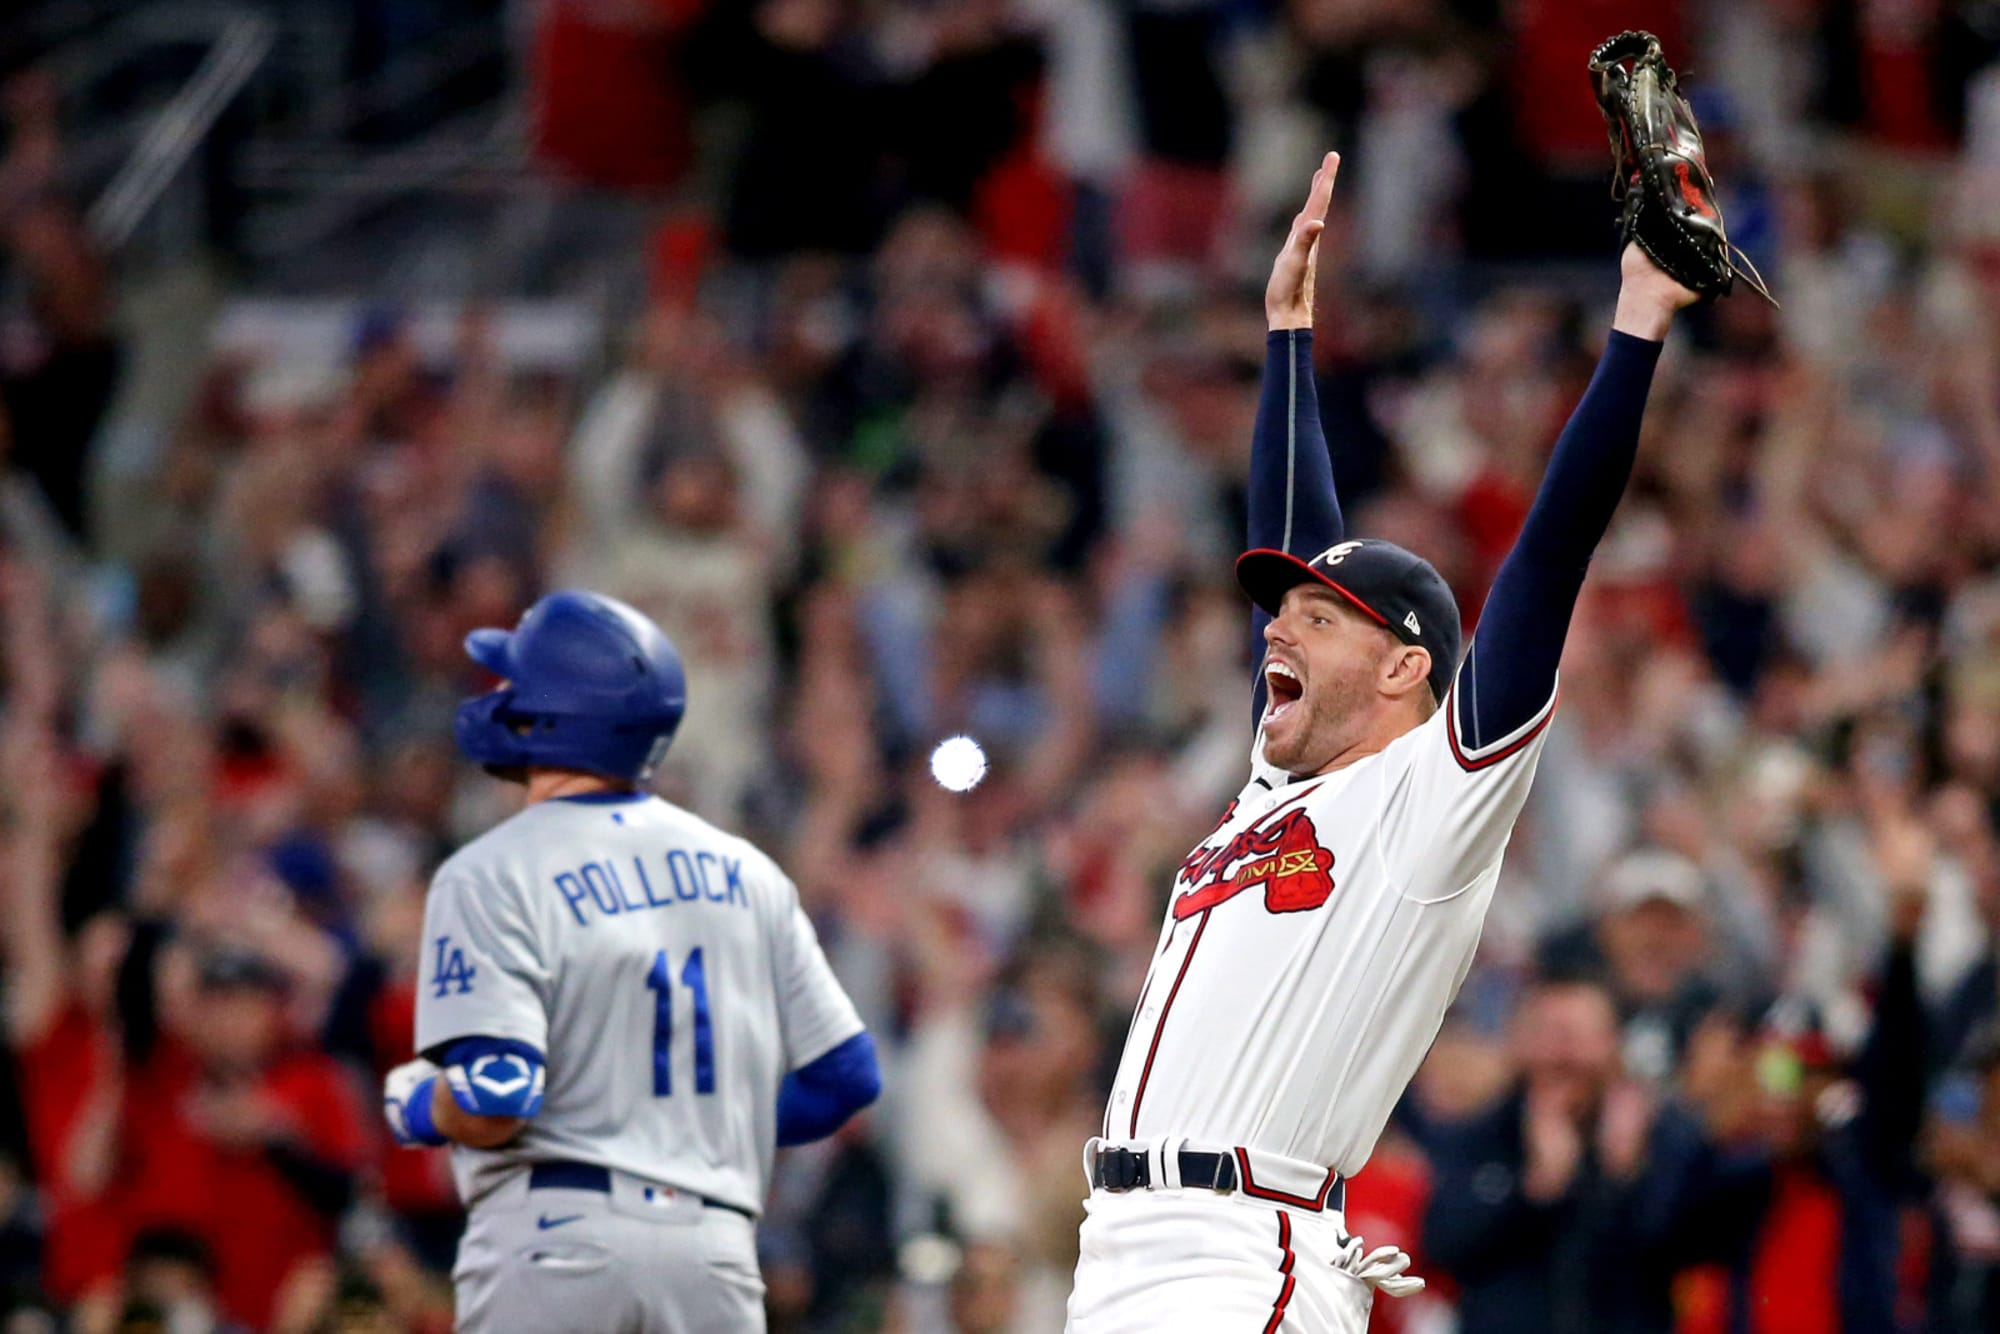 What it means to have the Atlanta Braves back playing in the World Series